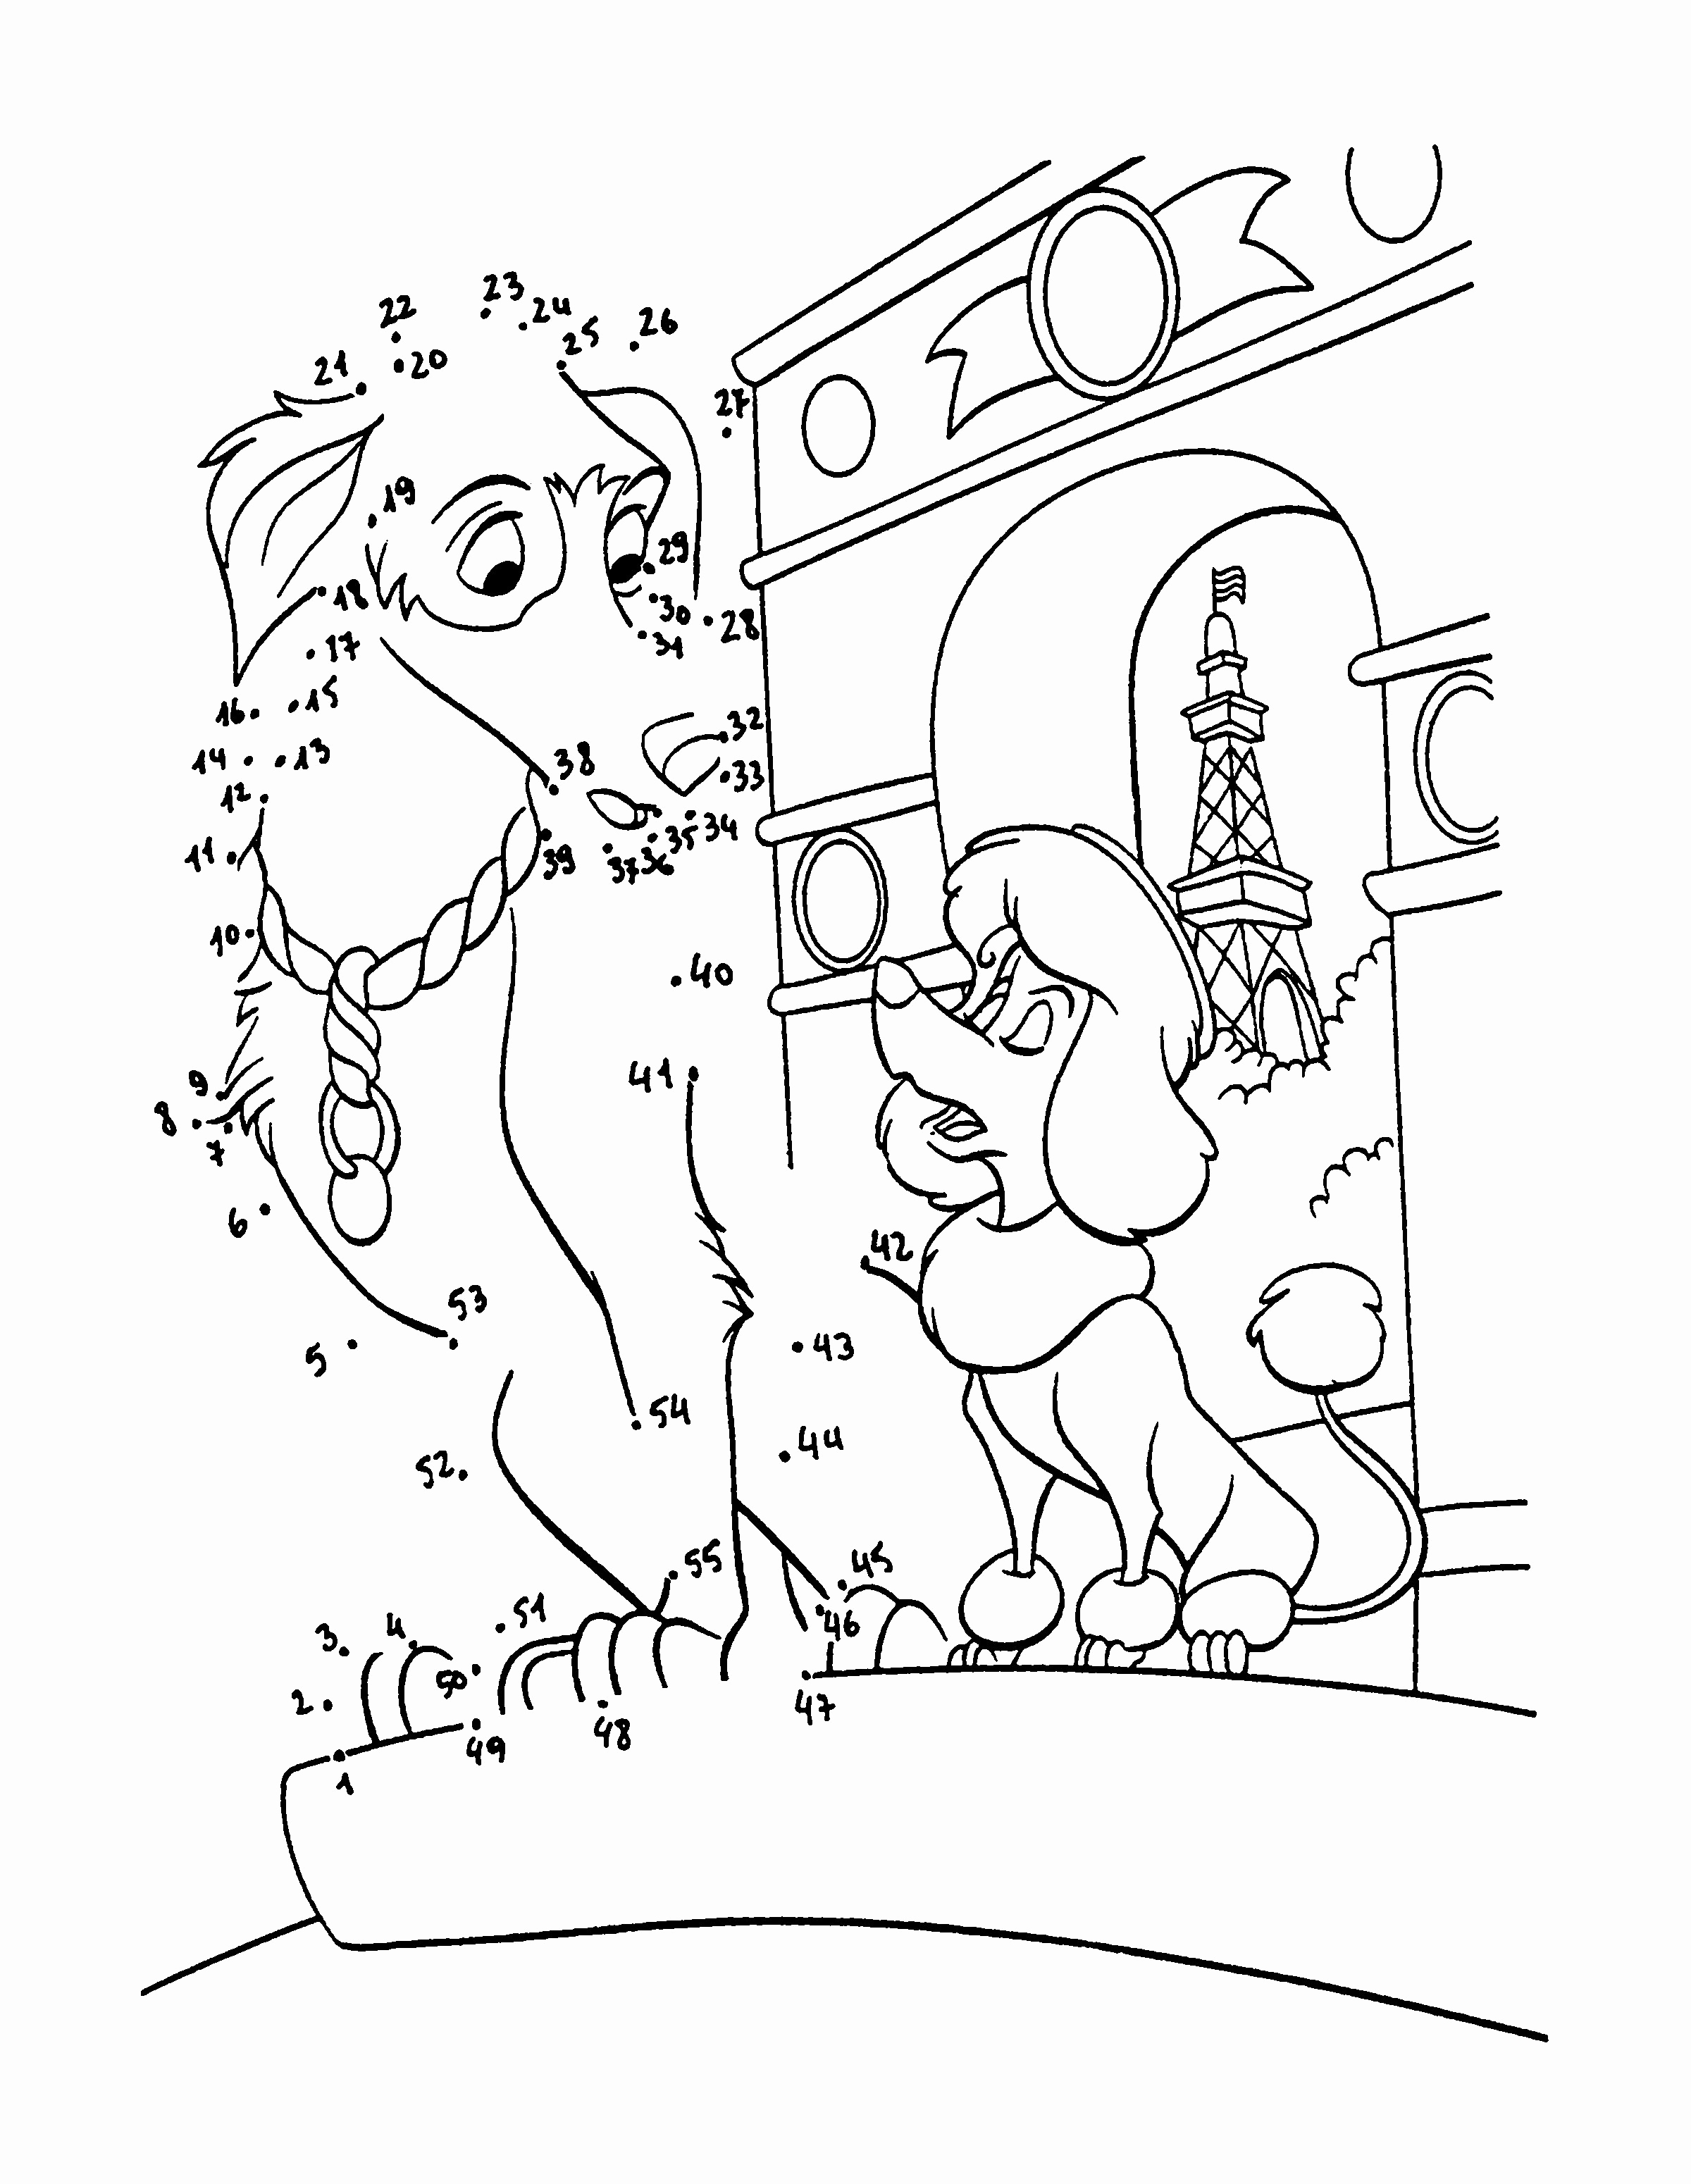 Olaf Coloring Pages  to Print 5i - To print for your project